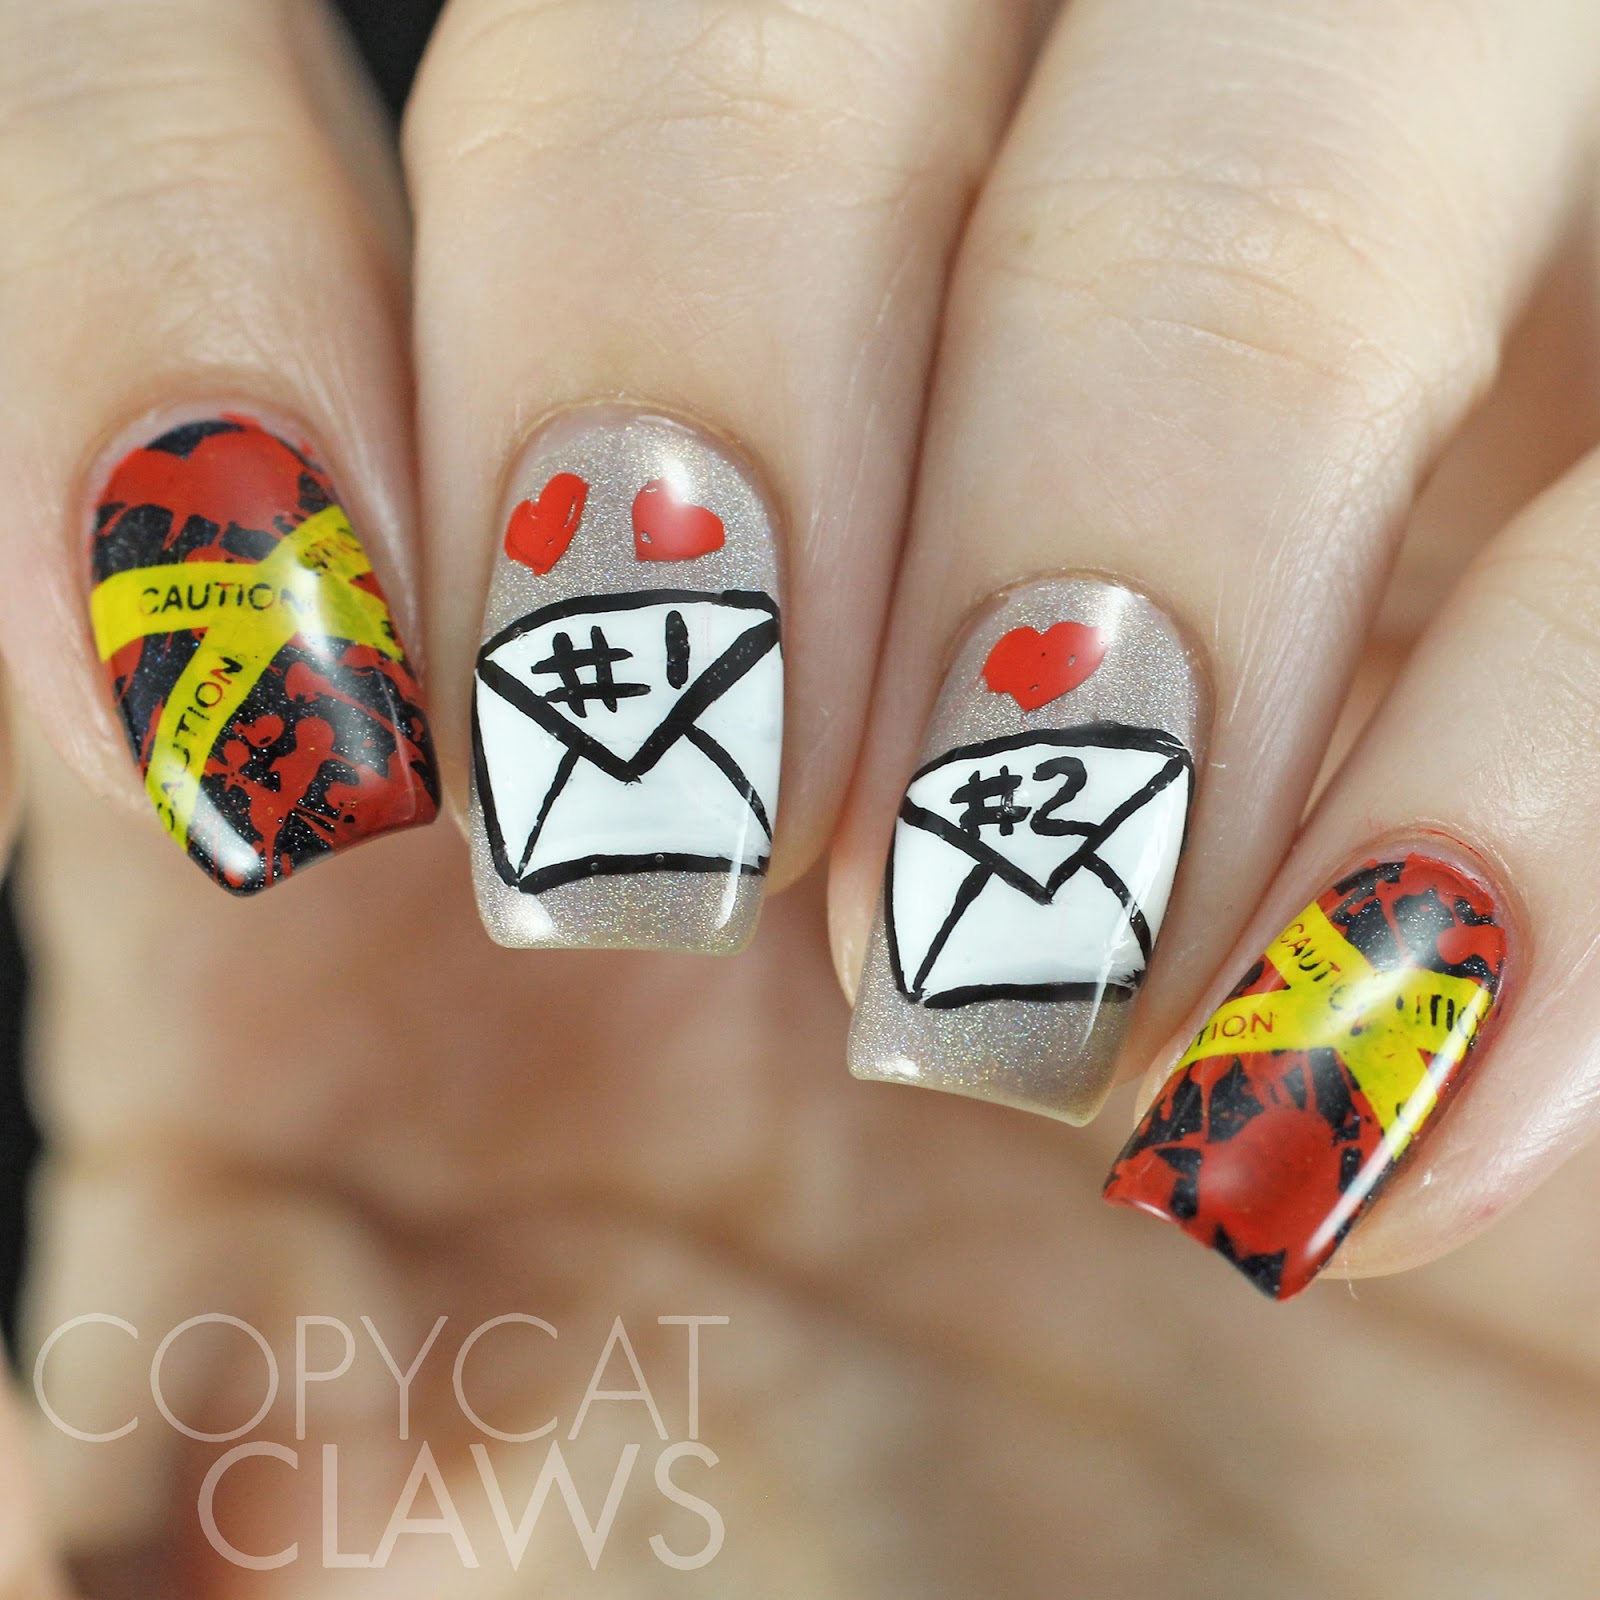 Copycat claws gone girl inspired nail art let me preface this by saying it was super difficult for me to come up with a look inspired by this book while i did like the book quite a bit prinsesfo Images